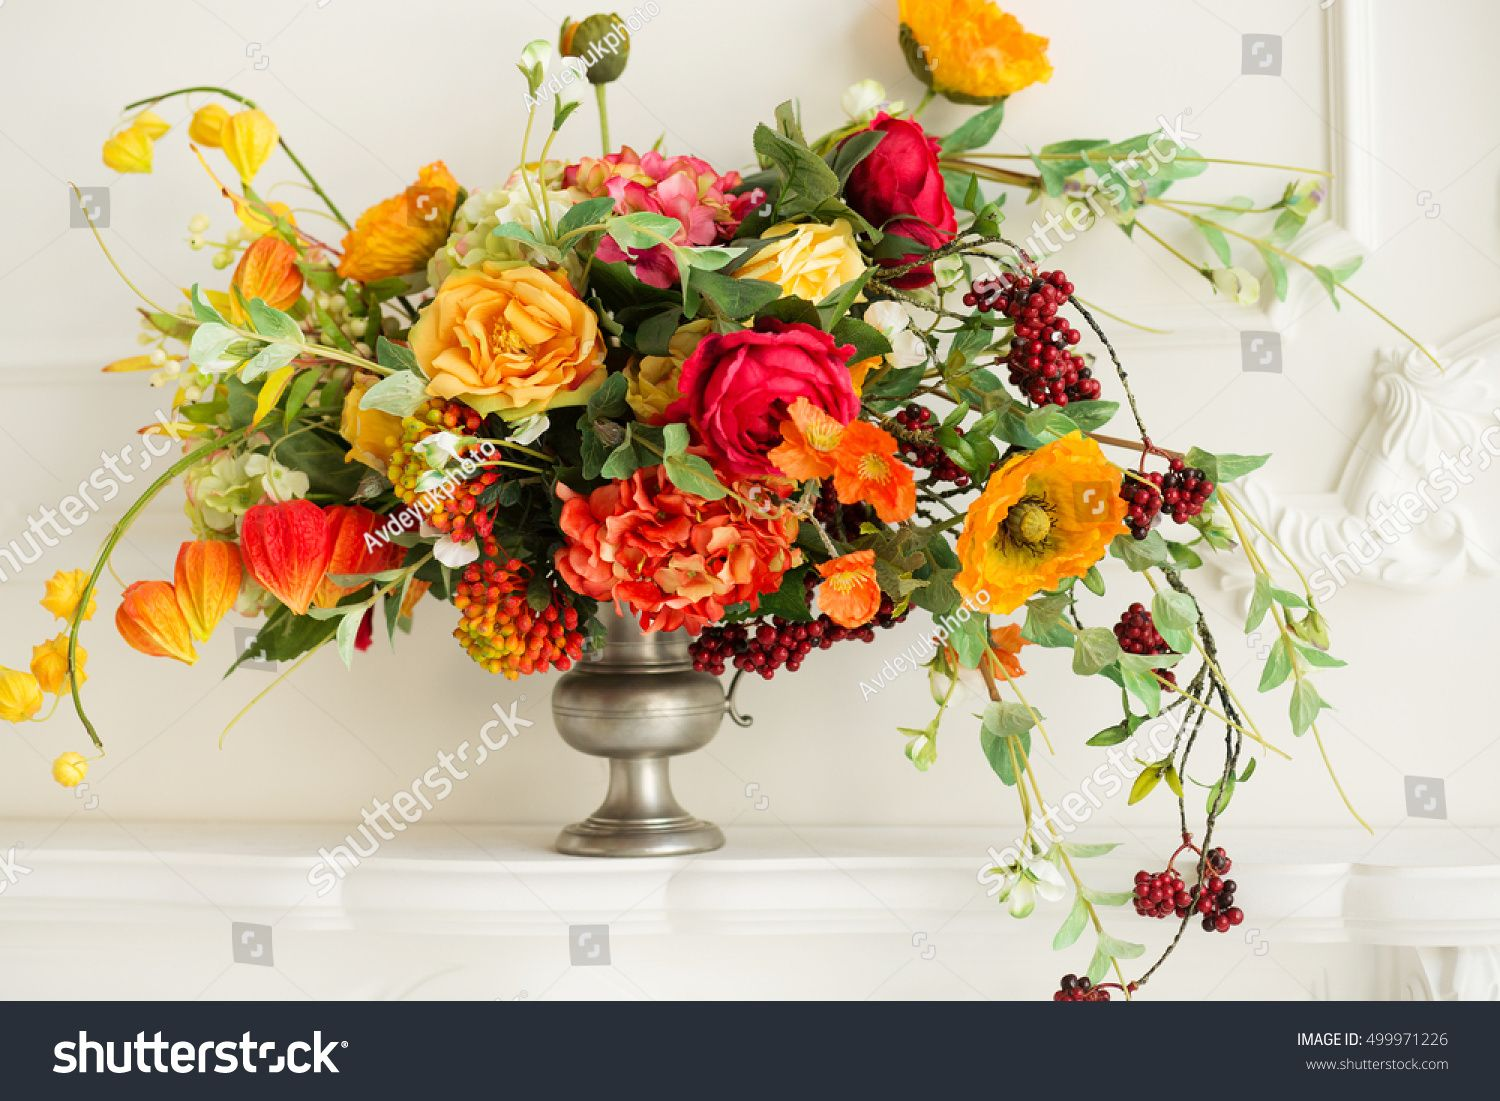 Inspiration for bouquet for dinner (need low vase